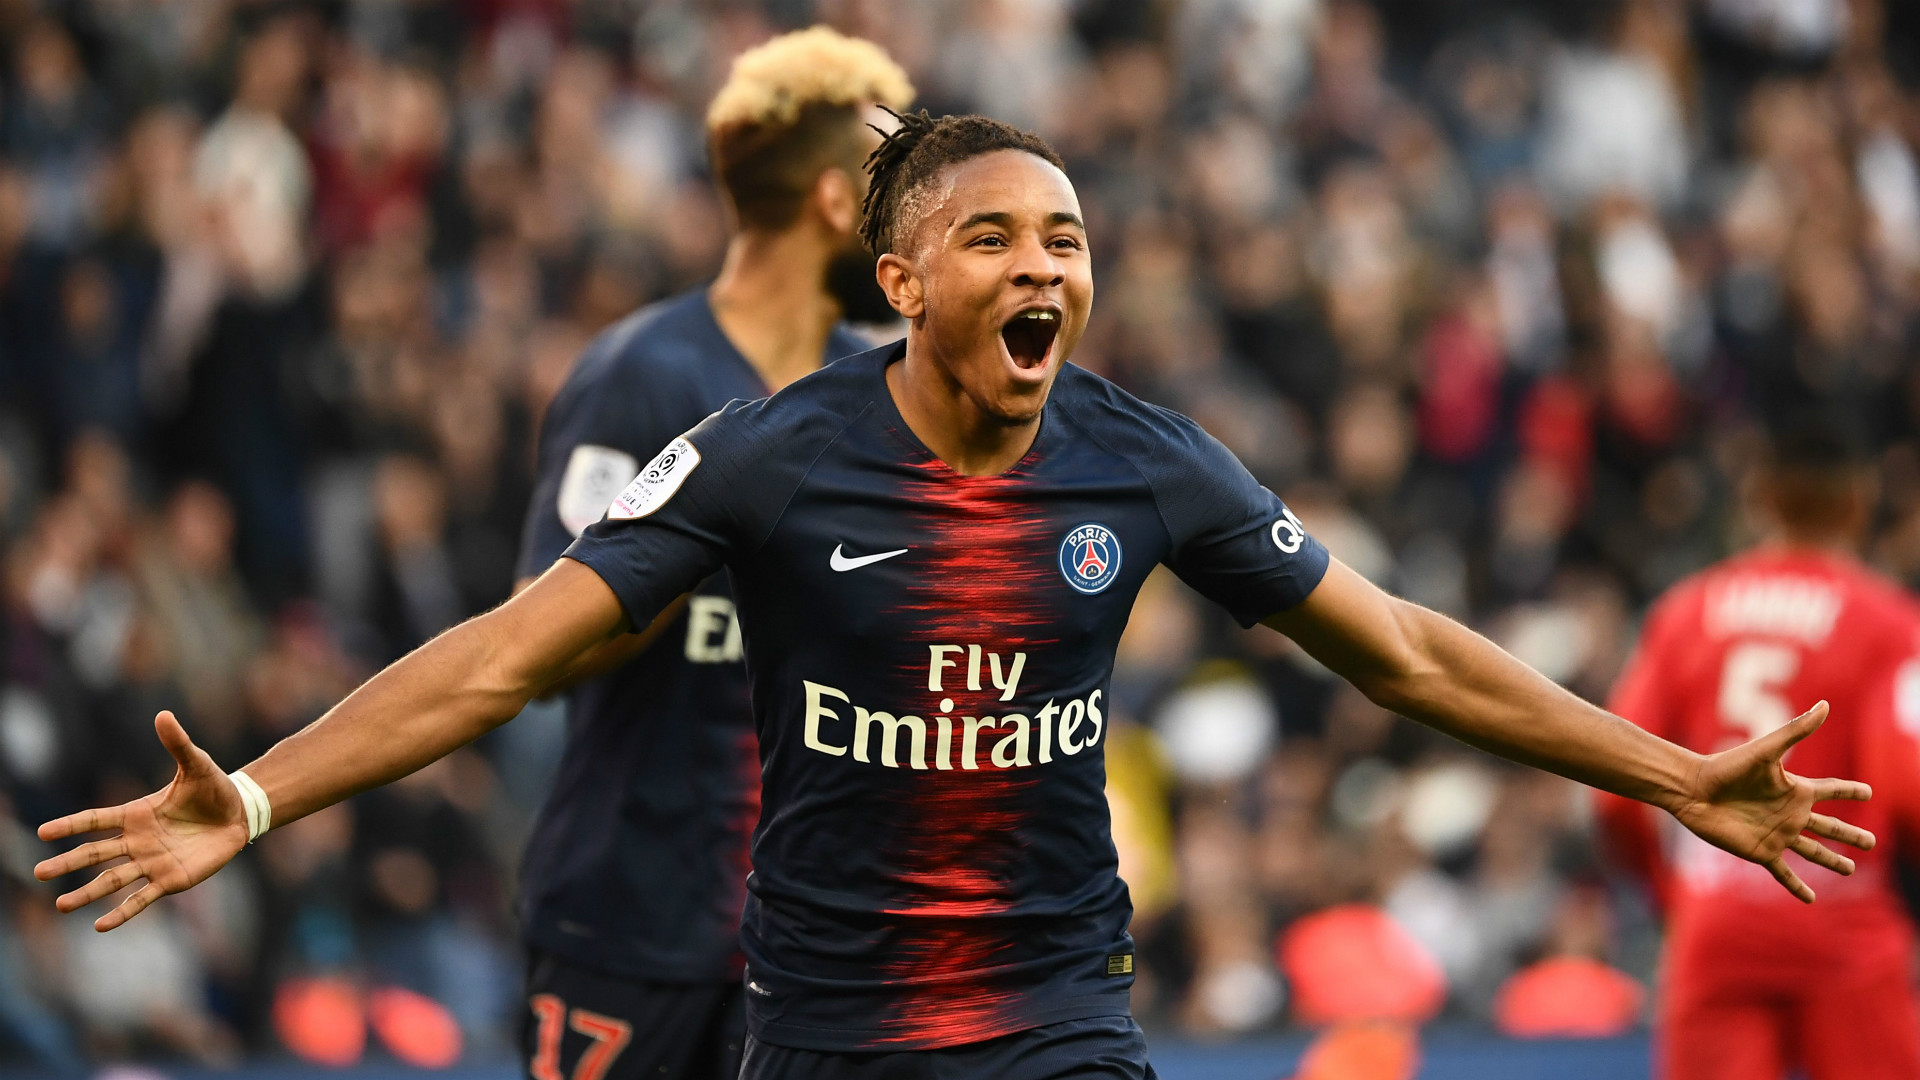 Officiel - Mercato PSG : Christopher Nkunku rejoint le RB Leipzig